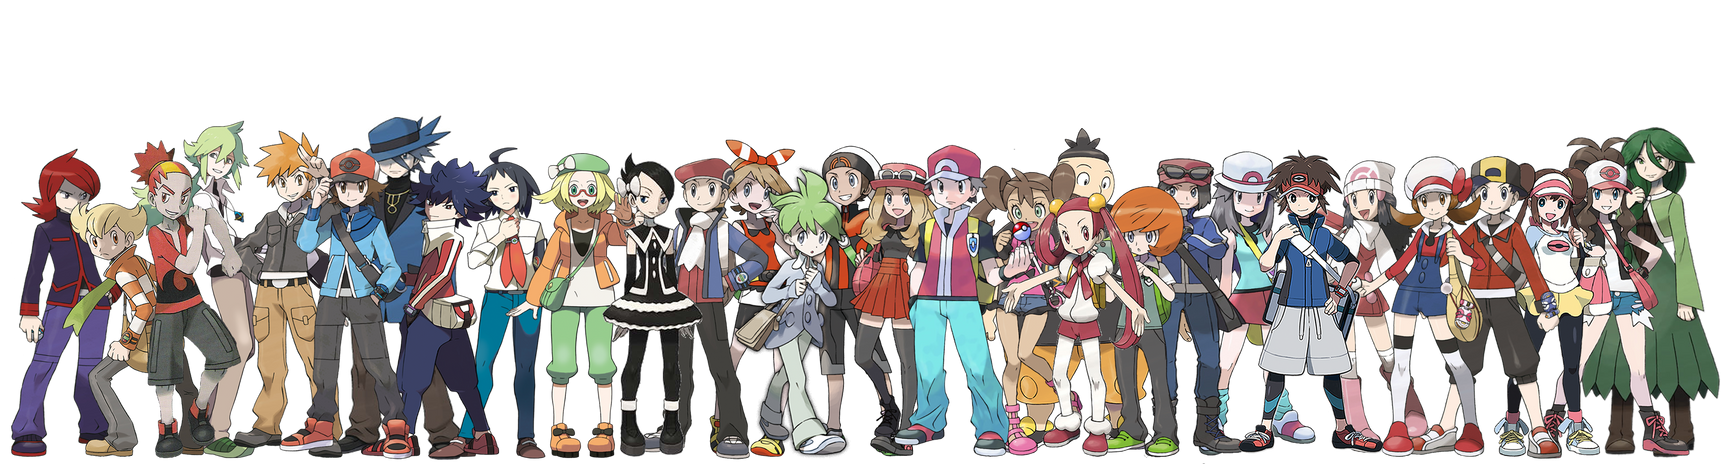 Pokemon Trainers - Rivals - Supporting Rivals by NintendoFanDj